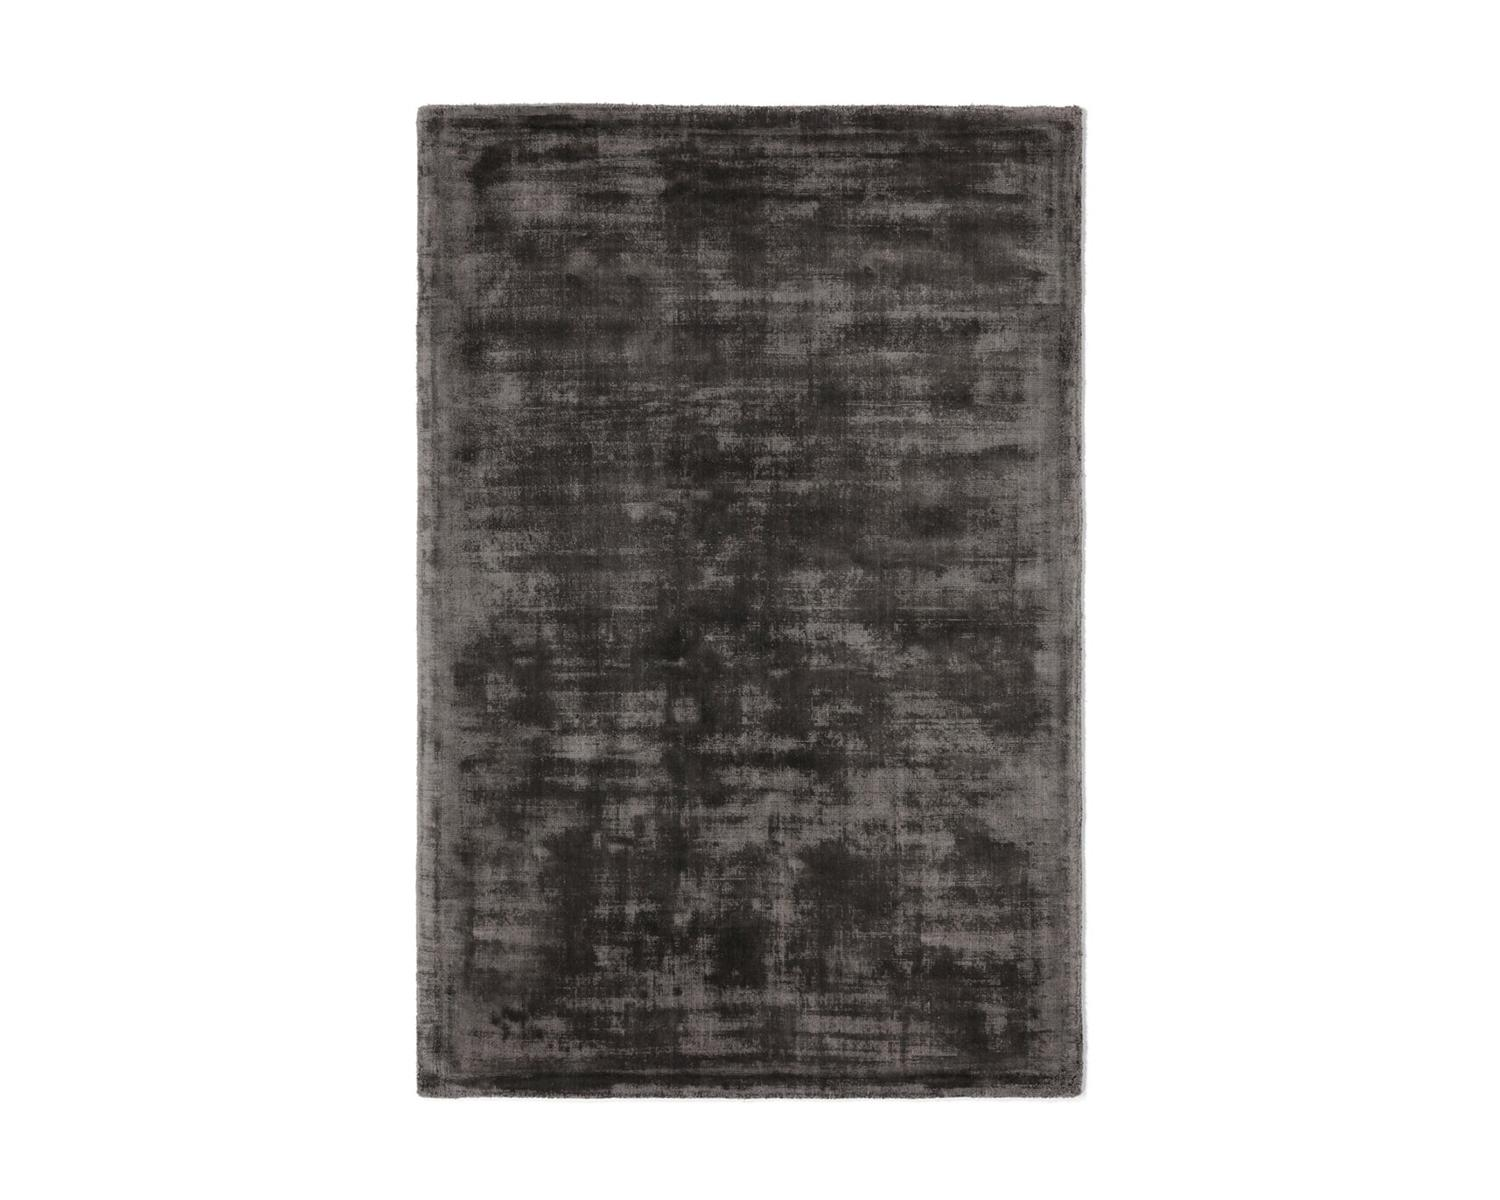 carrelage design tapis industriel moderne design pour carrelage de sol et rev tement de tapis. Black Bedroom Furniture Sets. Home Design Ideas